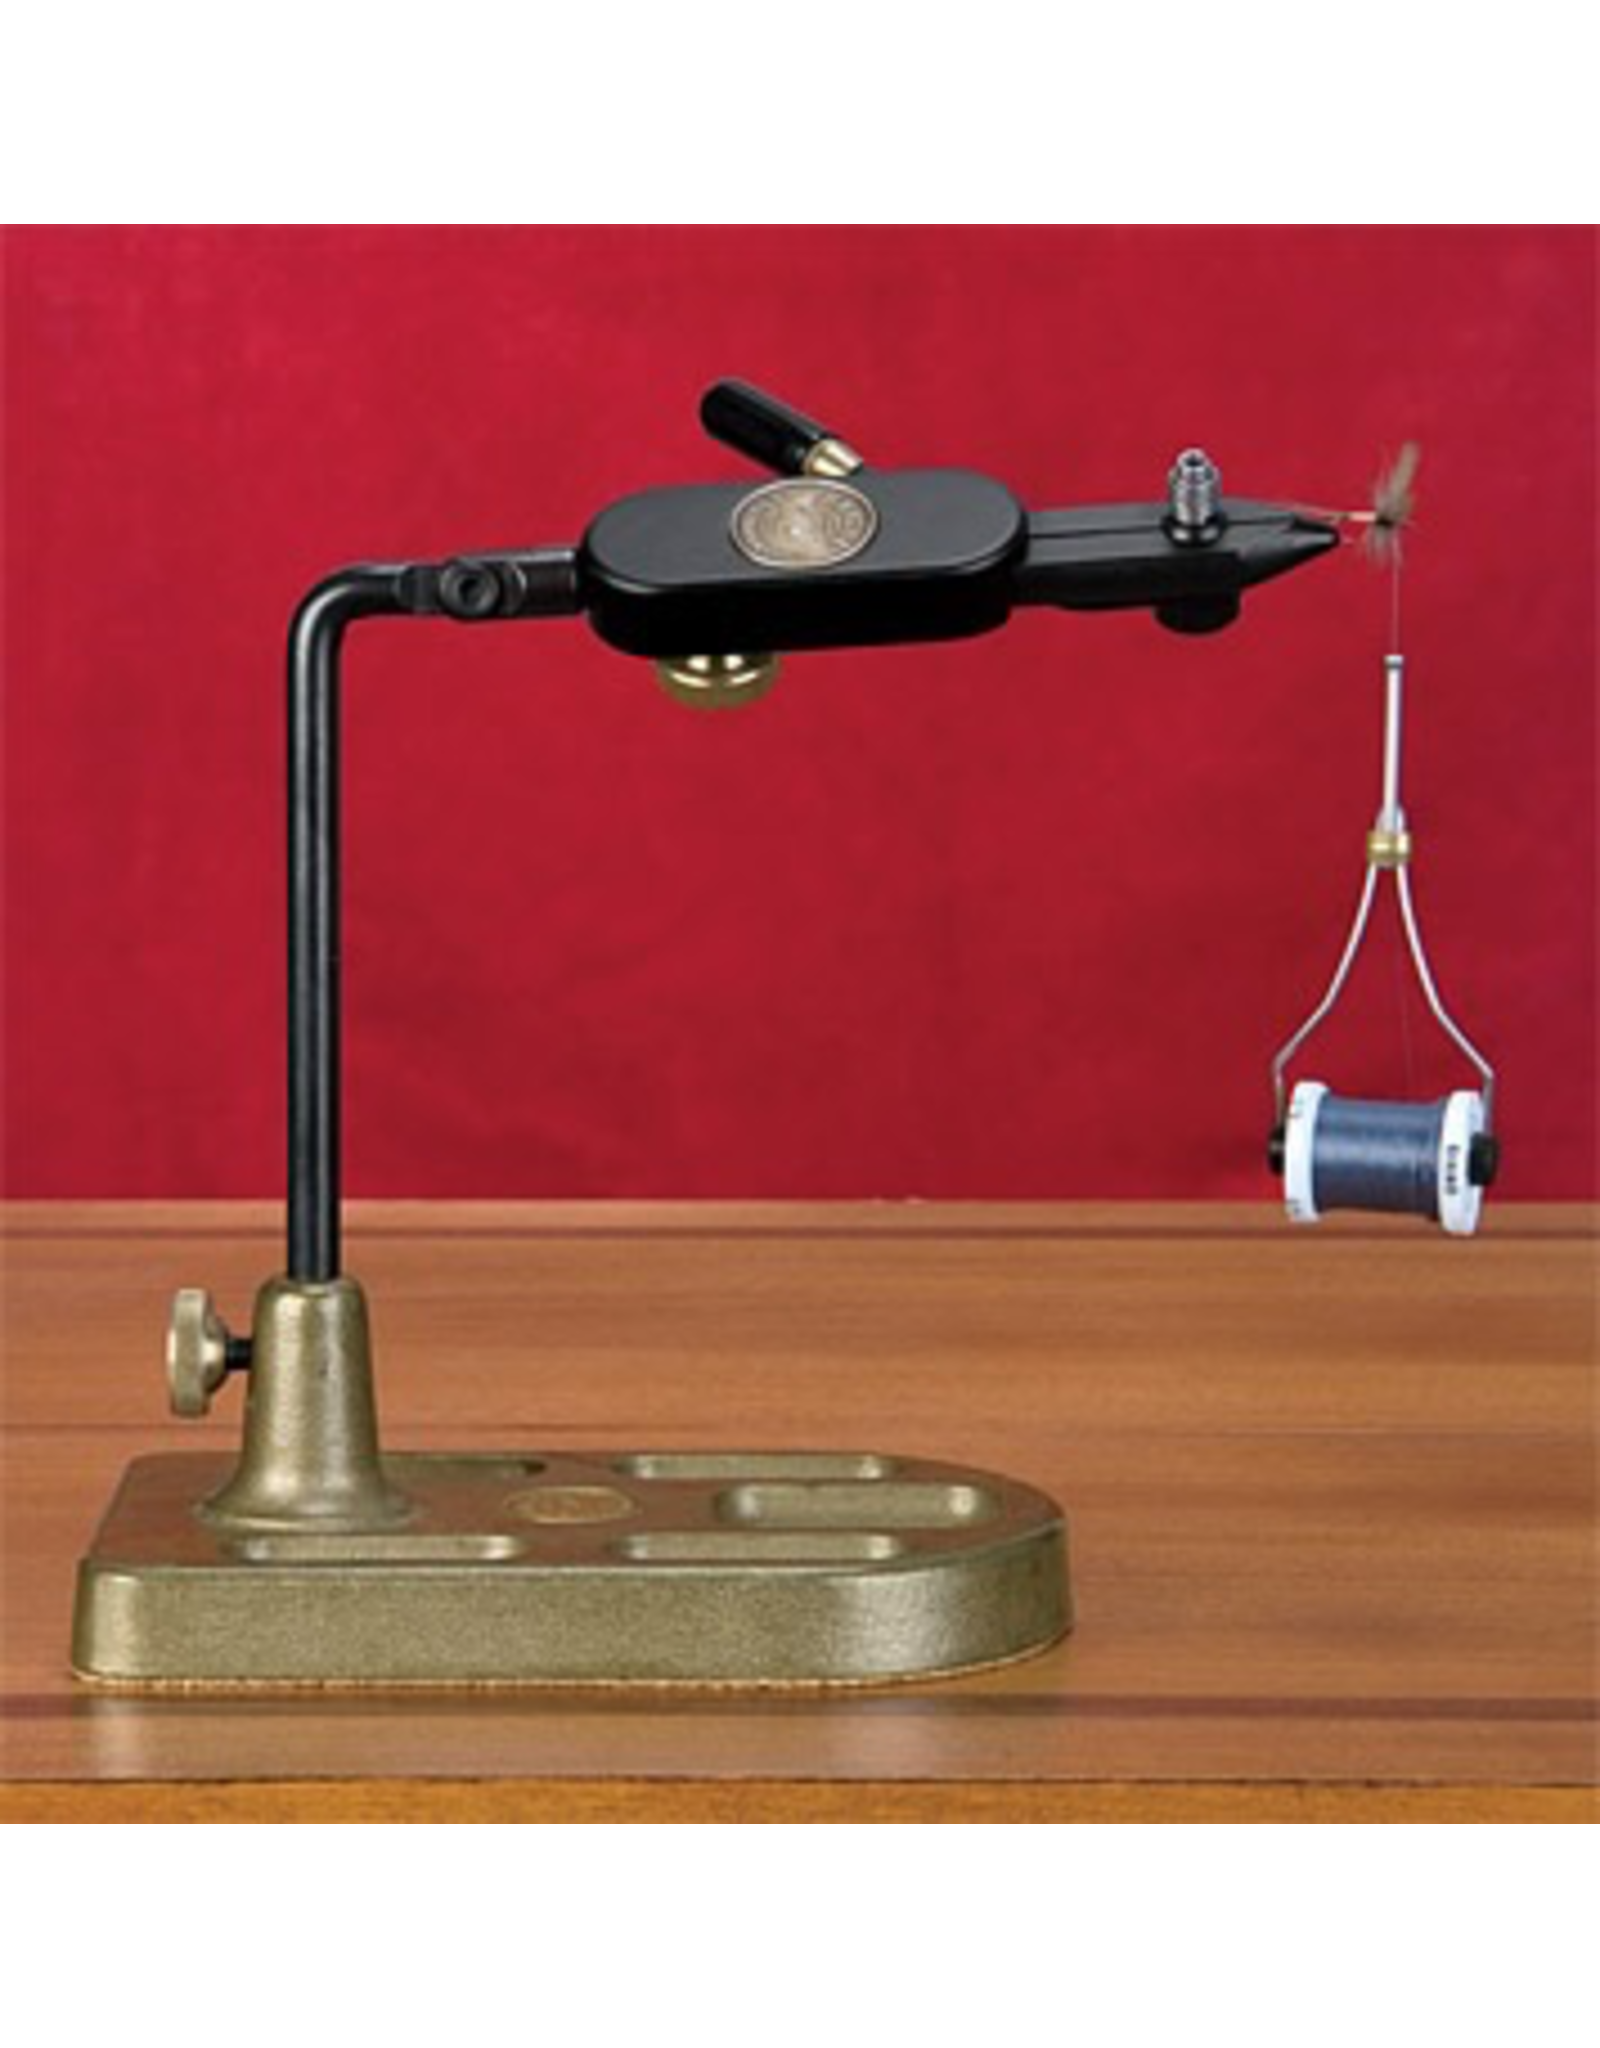 Nothing helps to pass the off-season better than a terrific fly-tying vise. Made in USA.